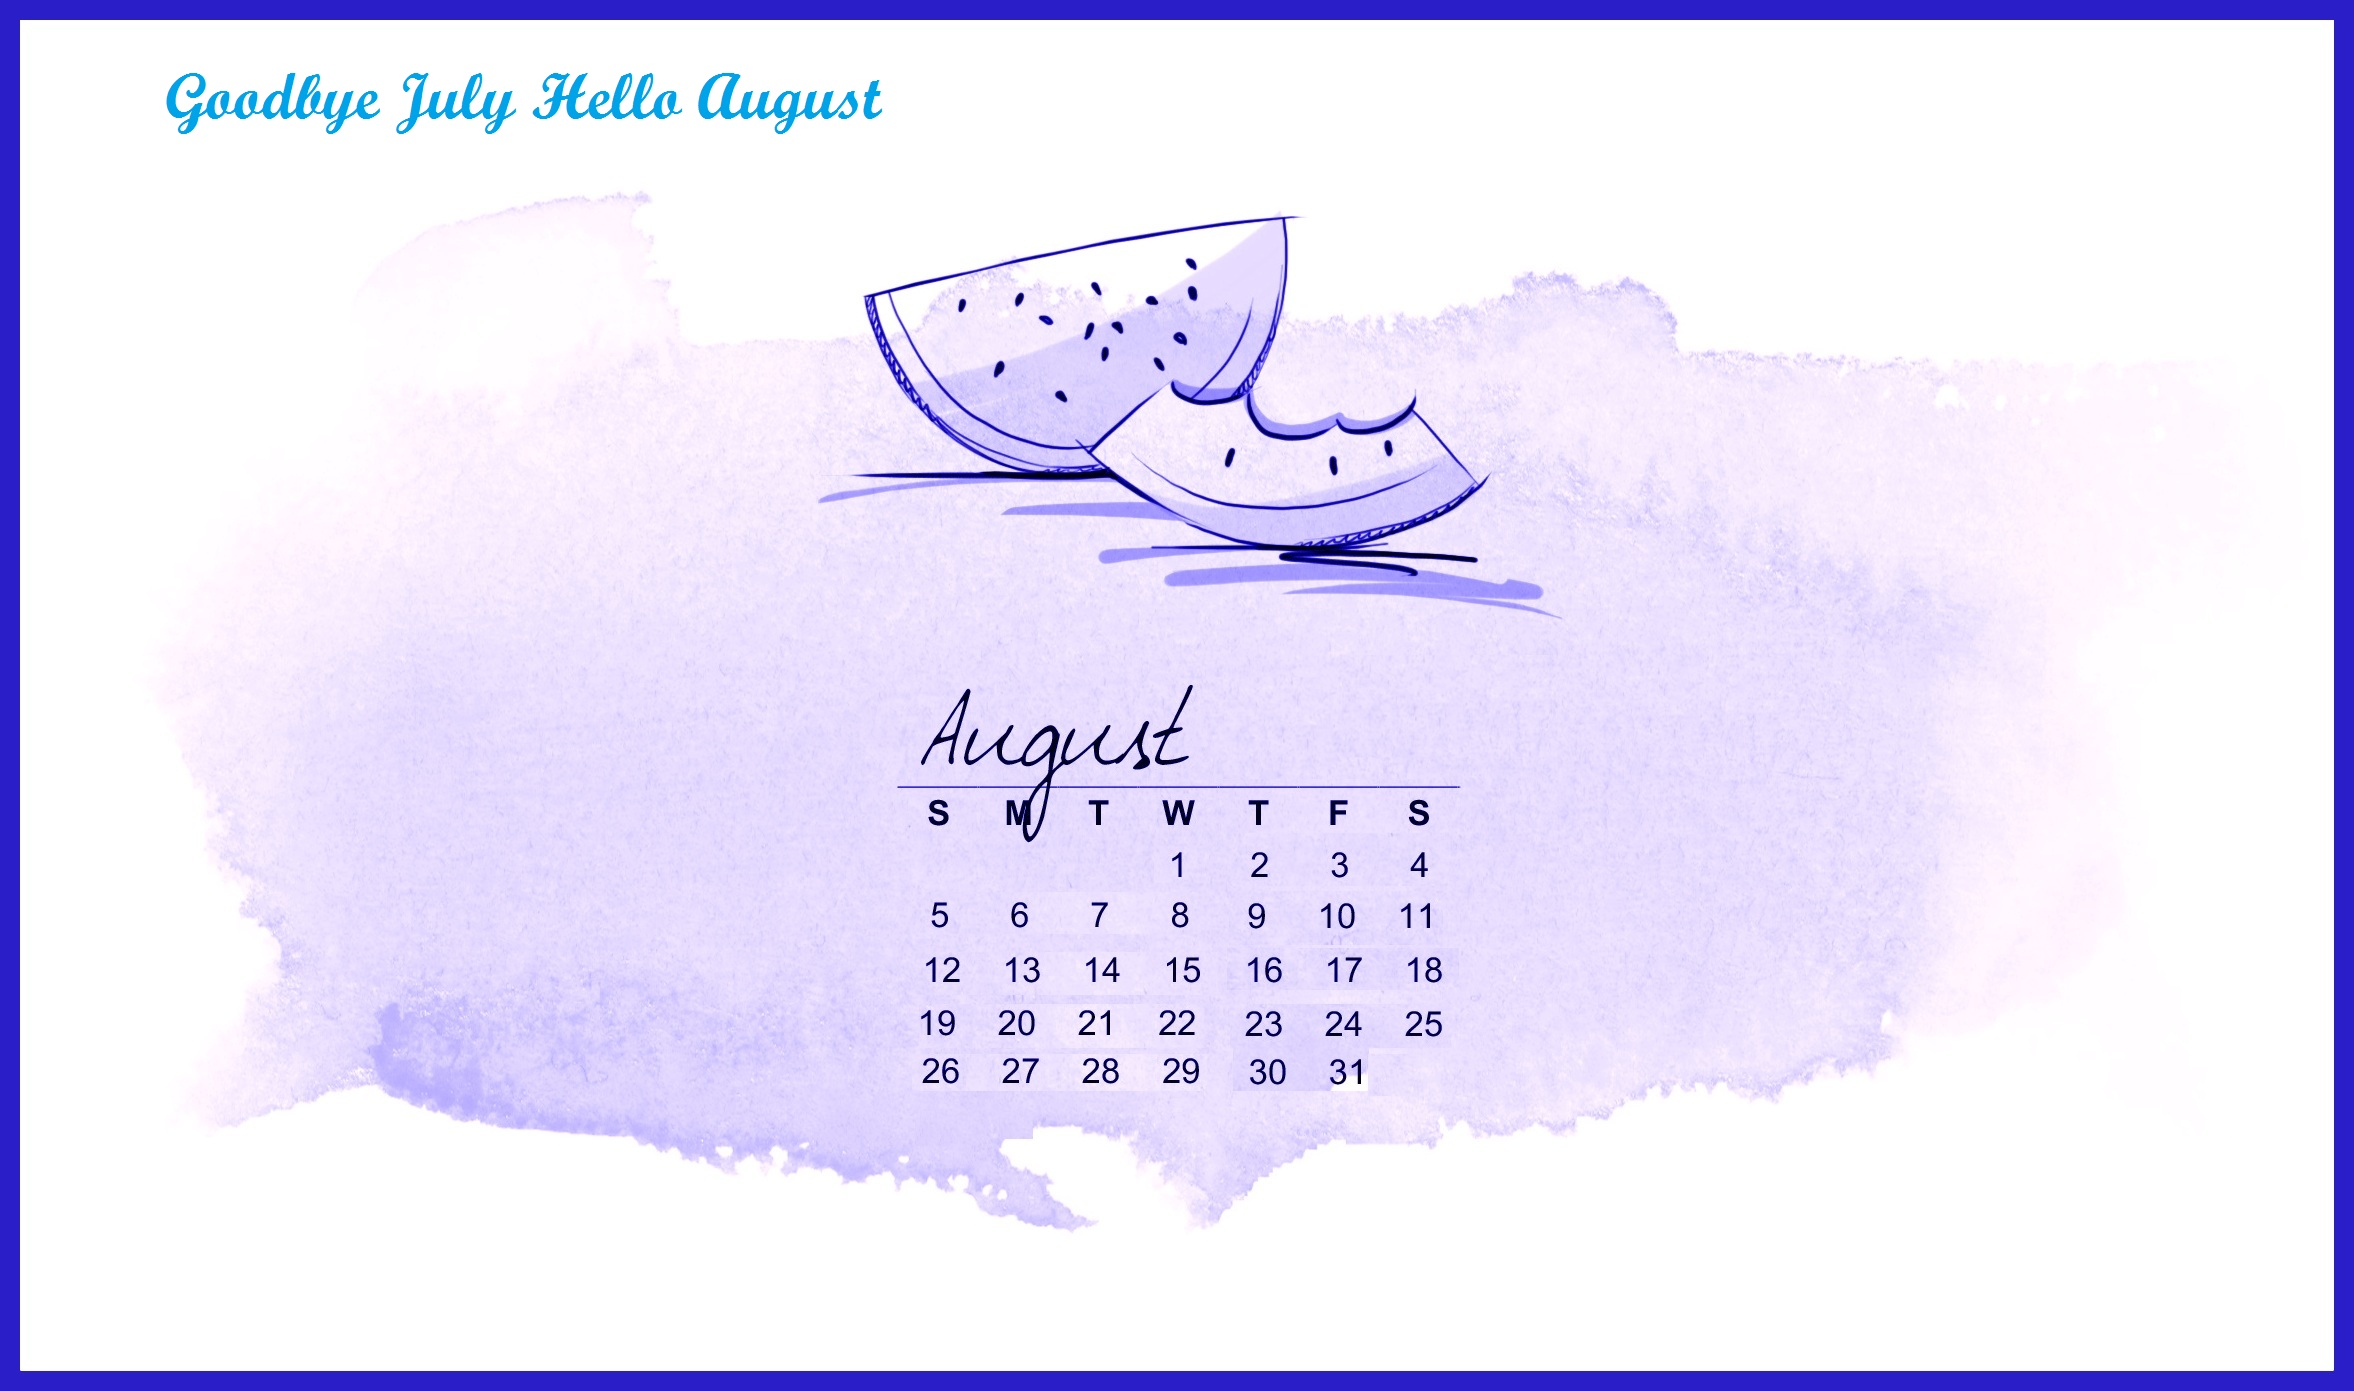 Goodbye July Hello August 2018 Calendar Wallpapers